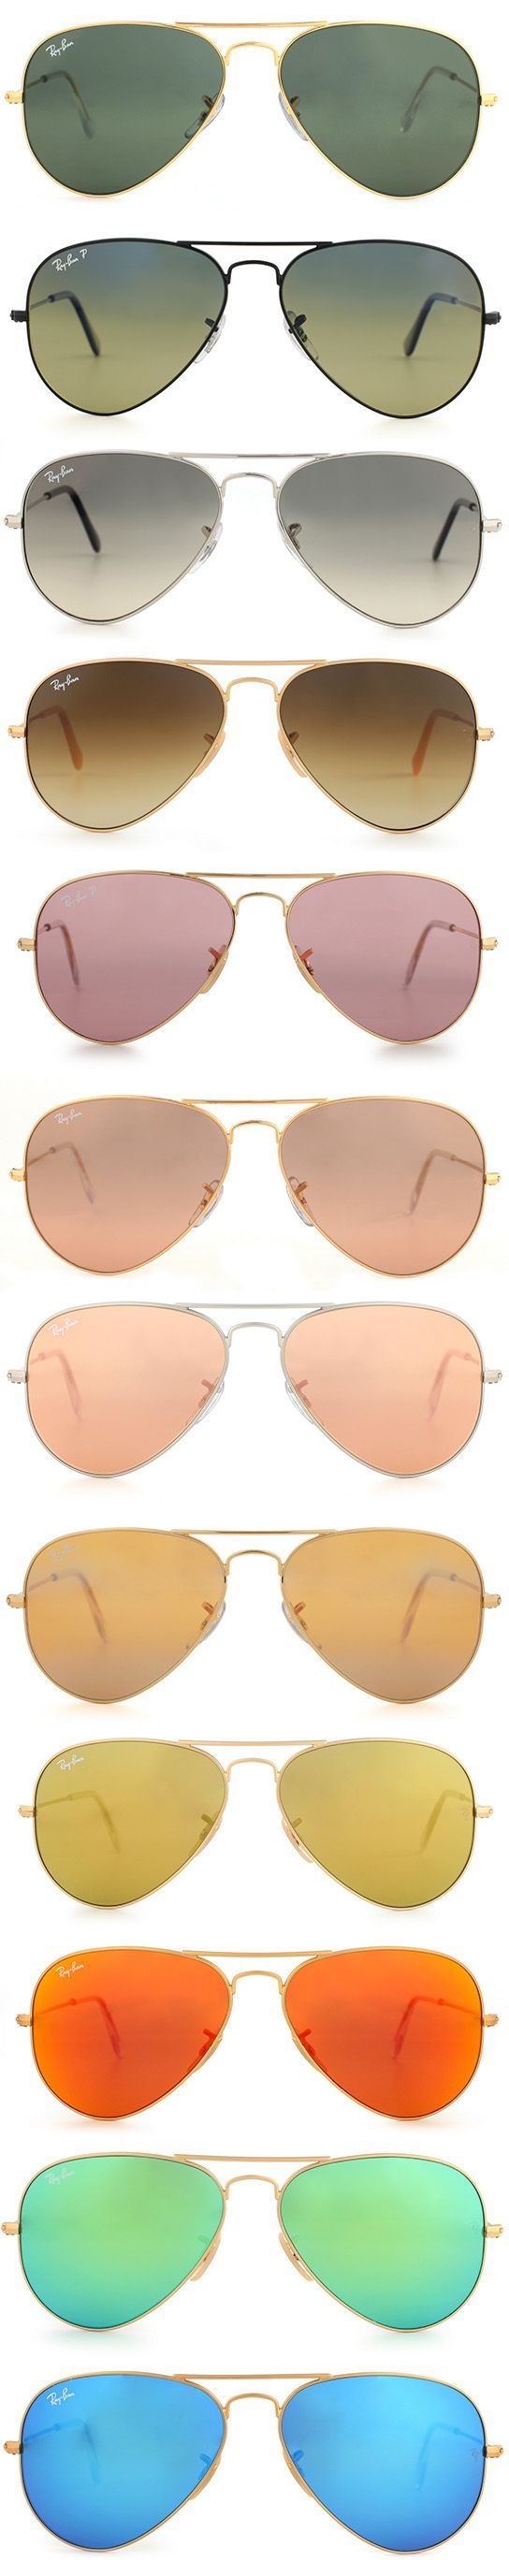 ray ban aviator online  17 Best ideas about Ray Ban Aviator on Pinterest